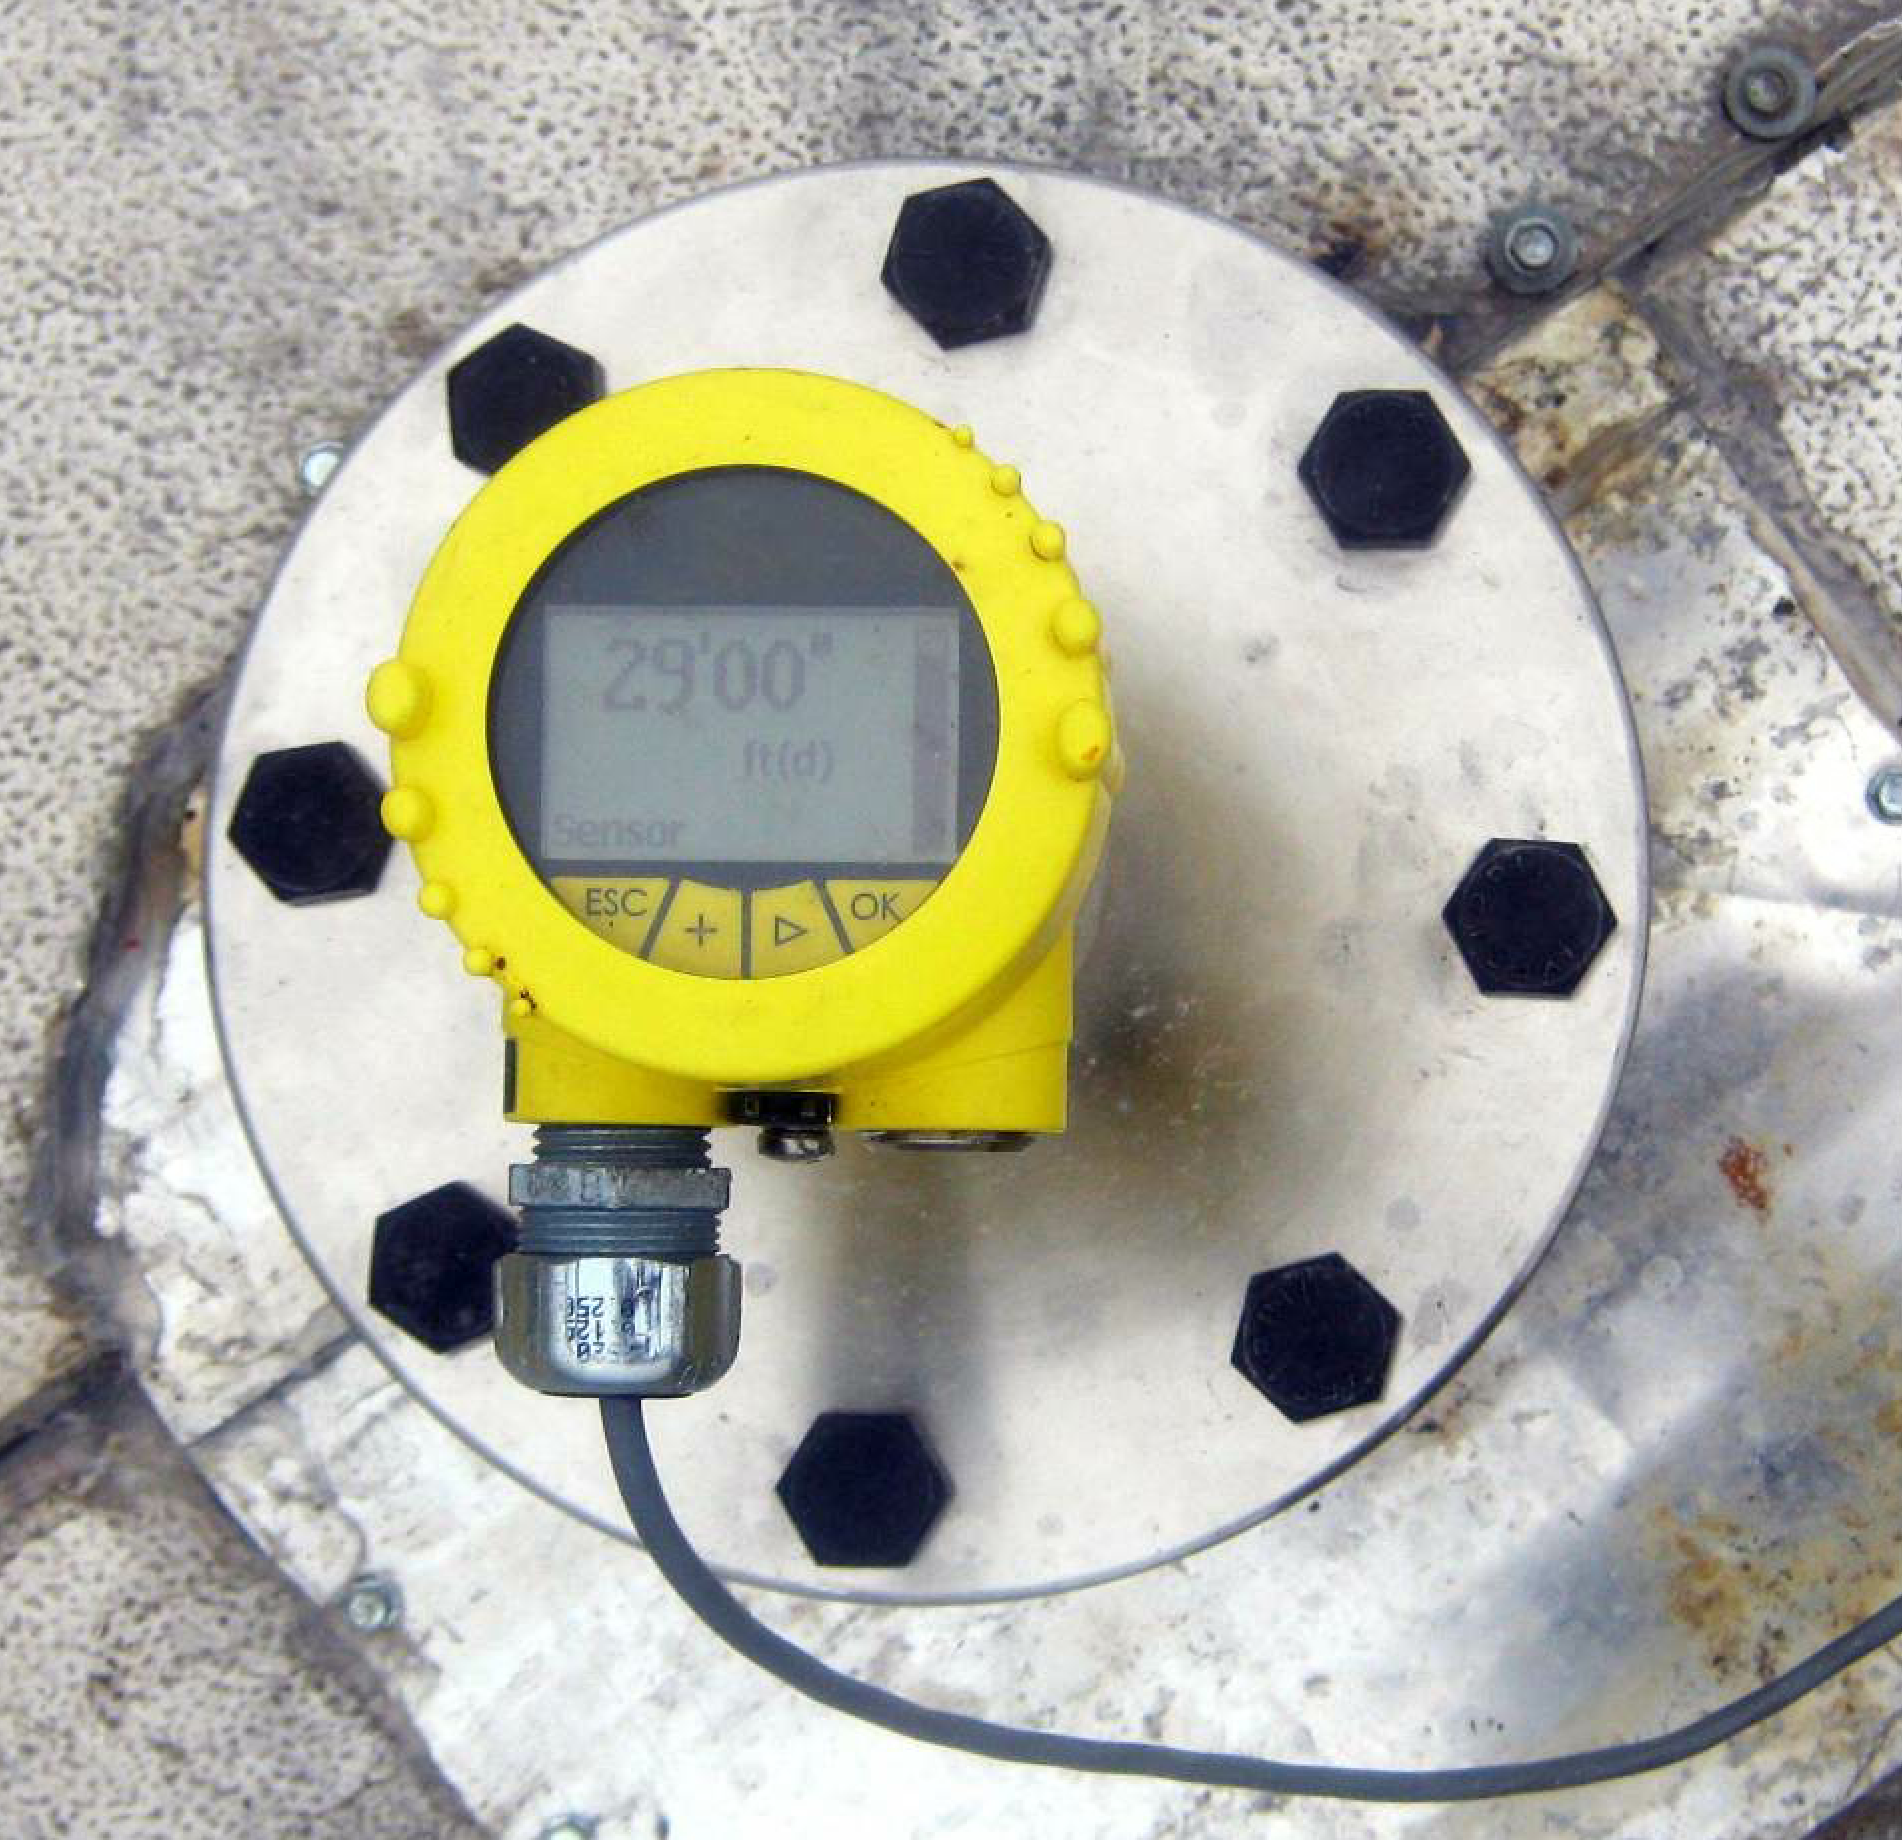 The Accu-Radar from Hotmix Parts & Service is designed to detect the level of finished asphalt in the silo, regardless of material distribution.